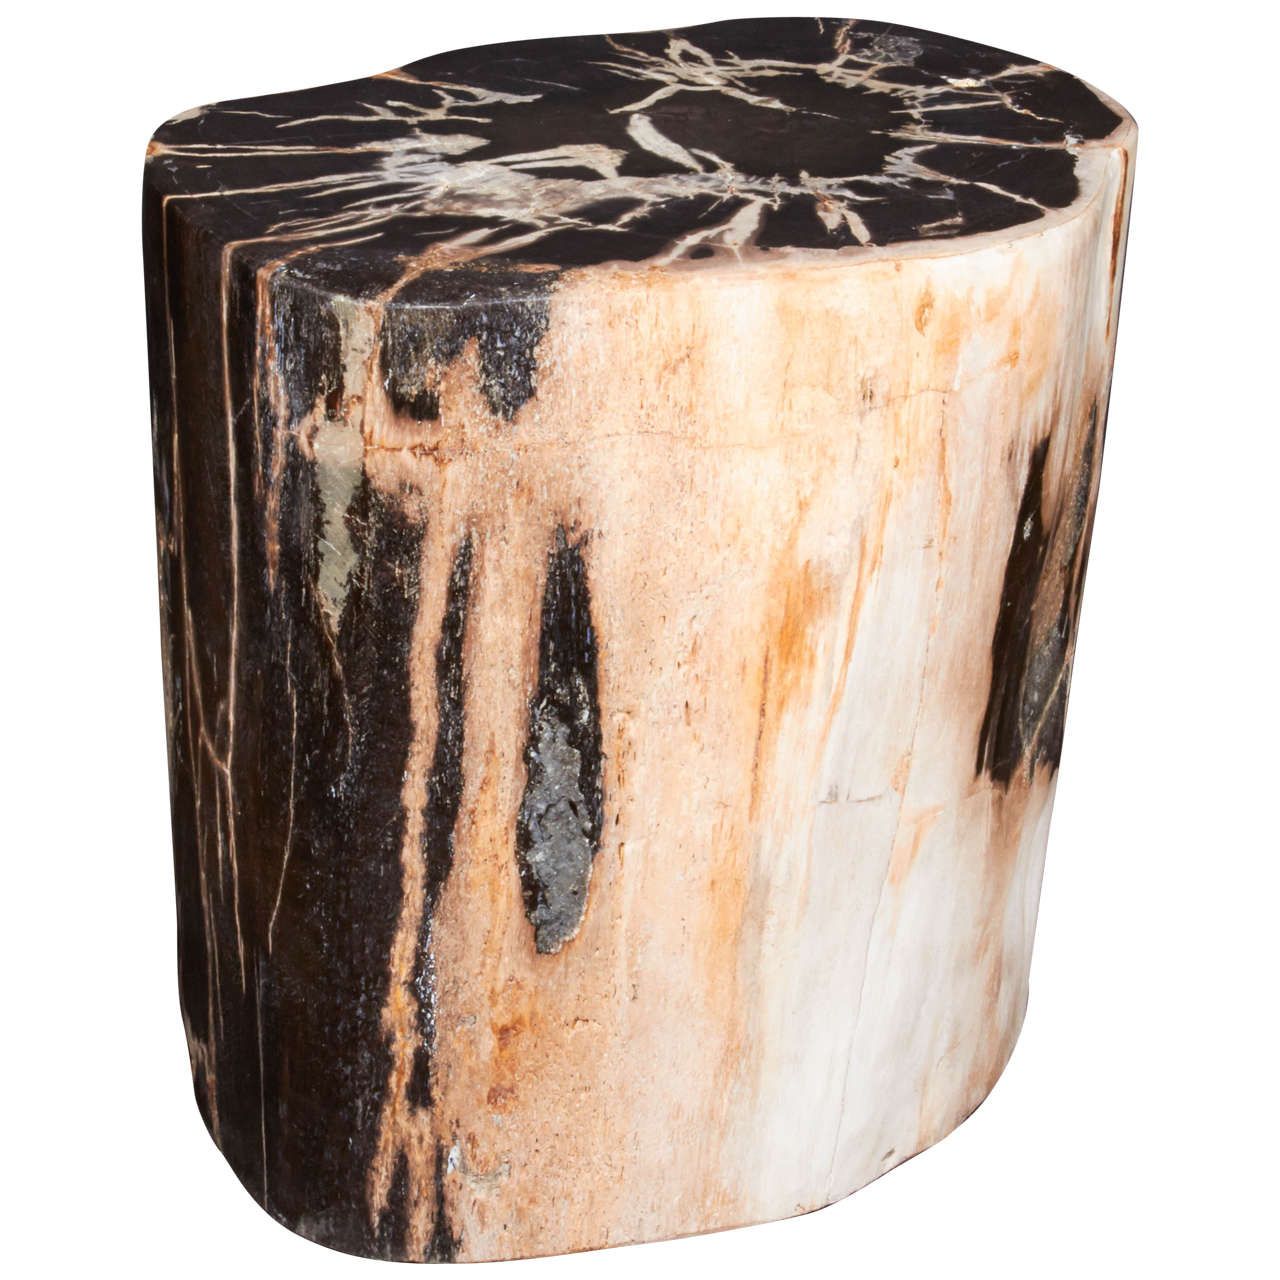 Exquisite Petrified Wood Side Table With Natural Striped Top 1